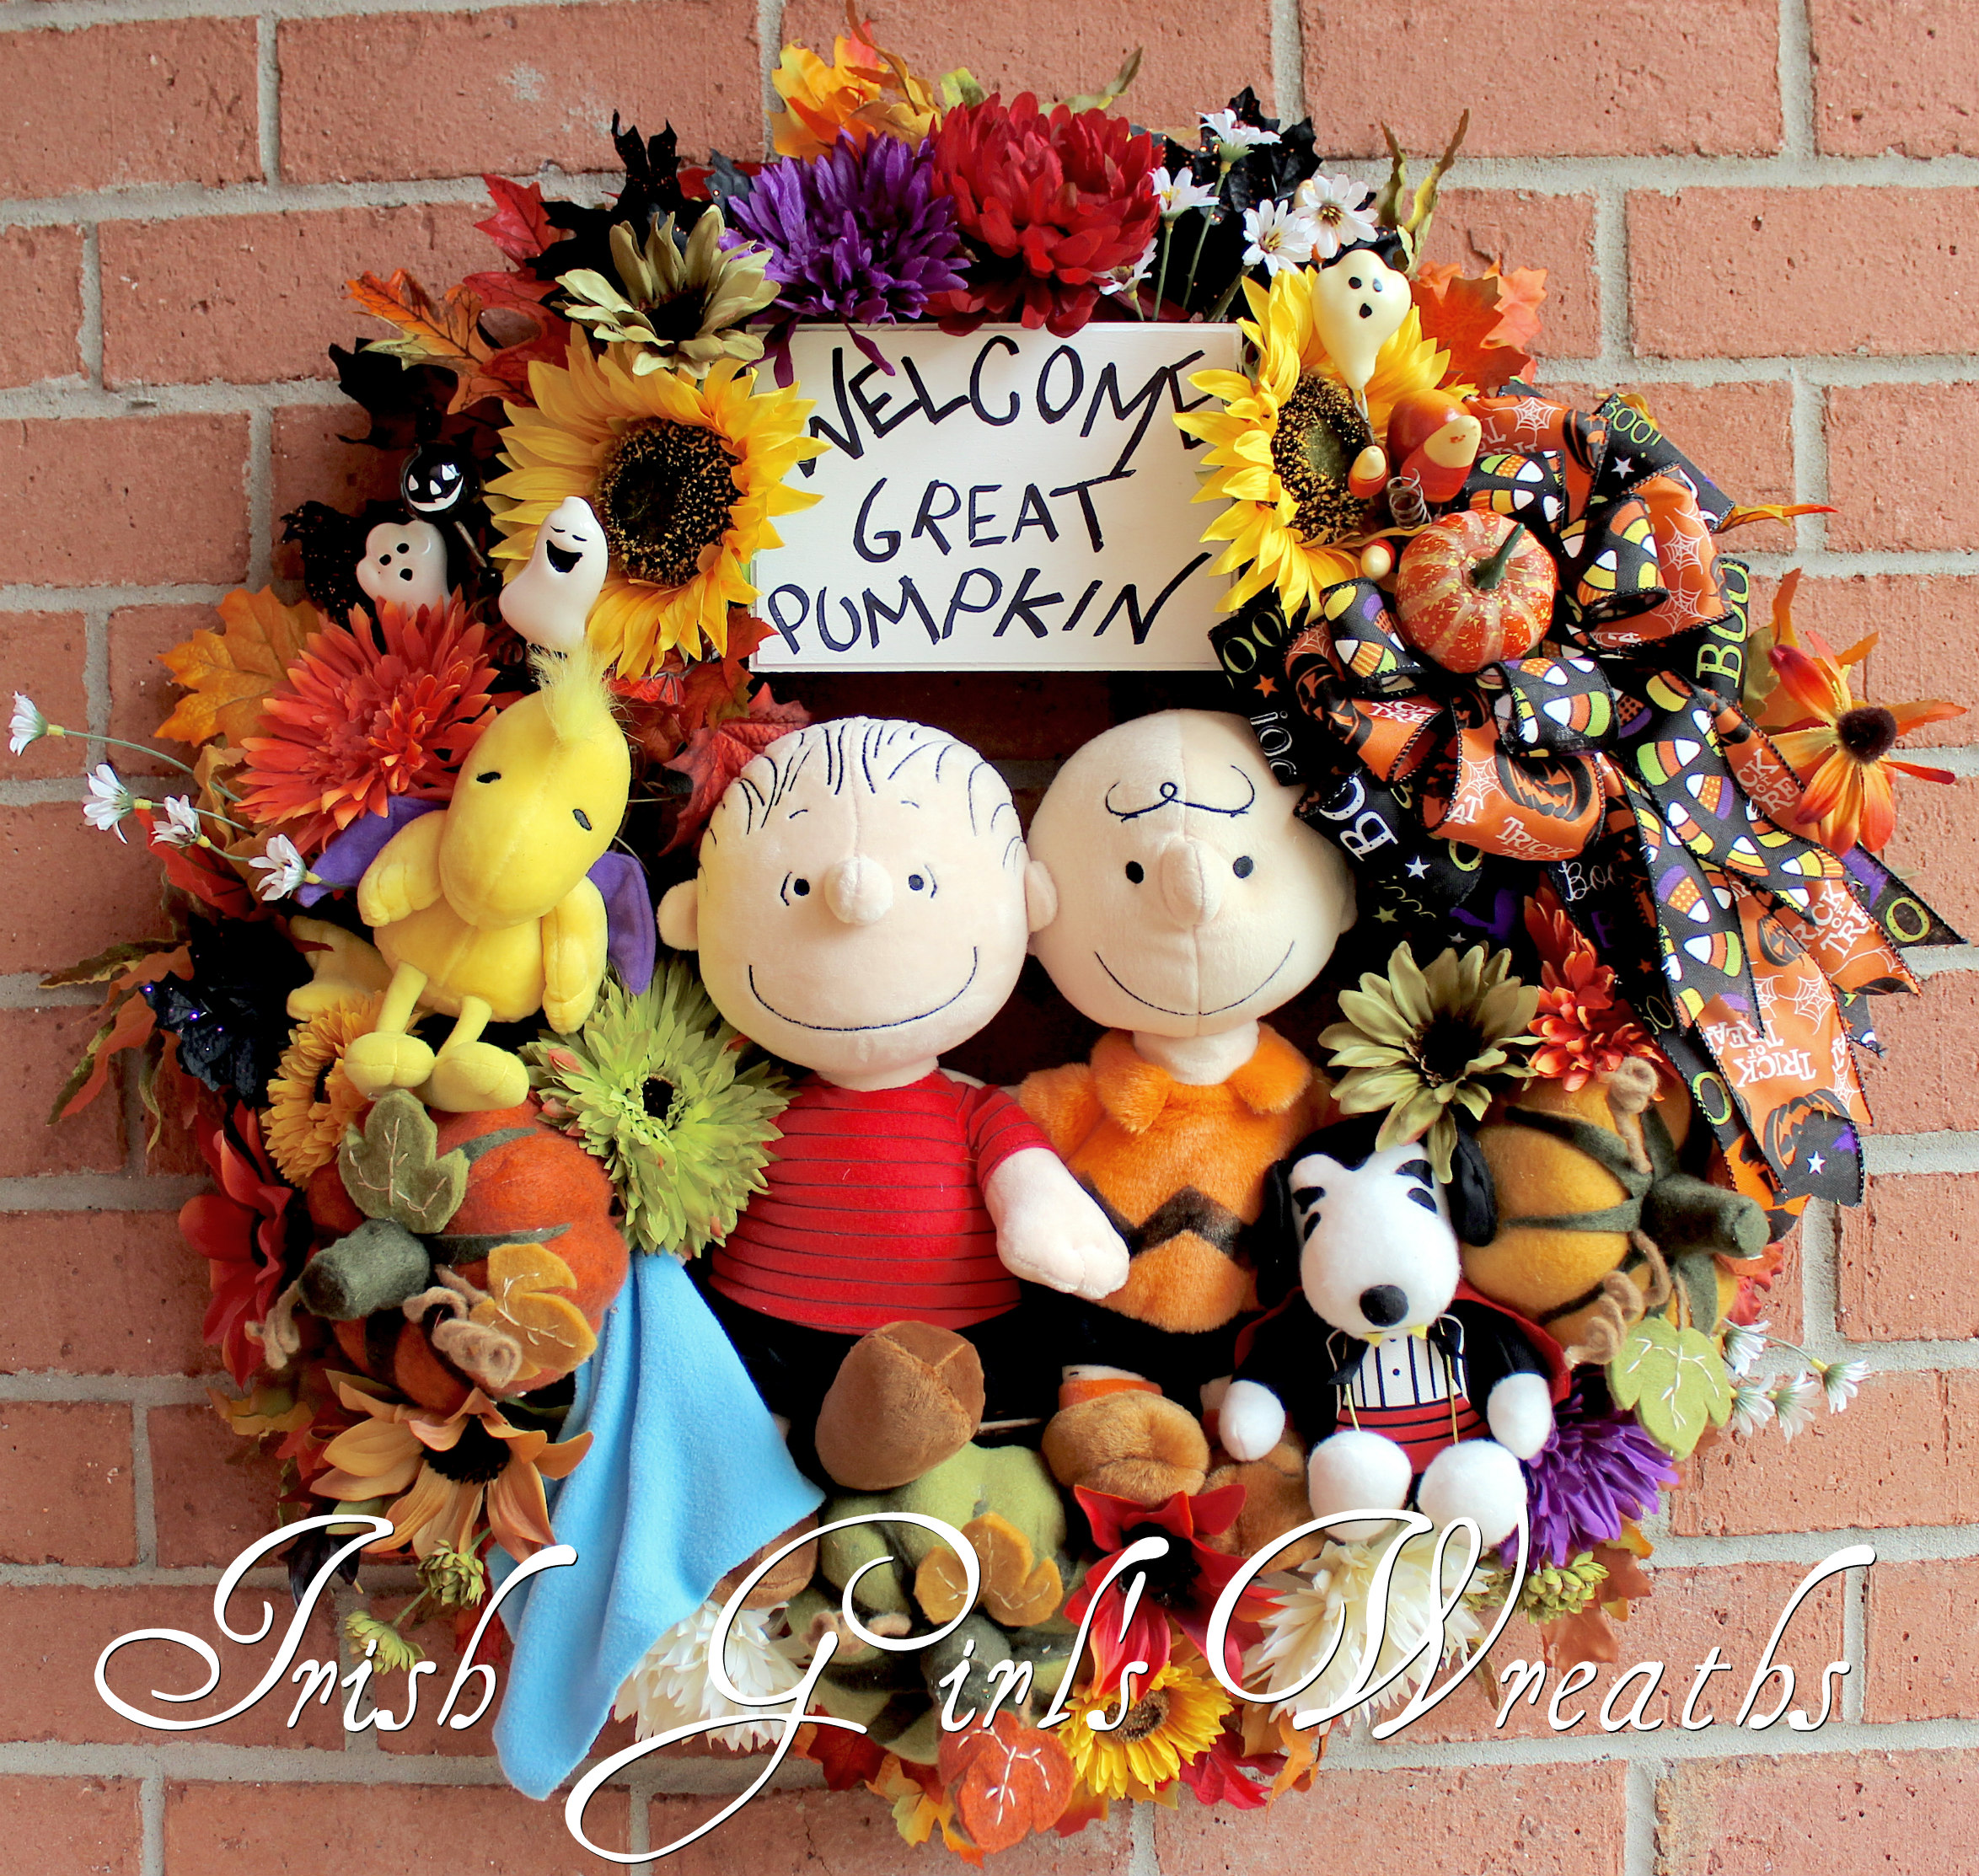 Great Pumpkin Halloween Wreath, Charlie Brown, Linus, Snoopy, Woodstock, Peanuts Gang Wreath